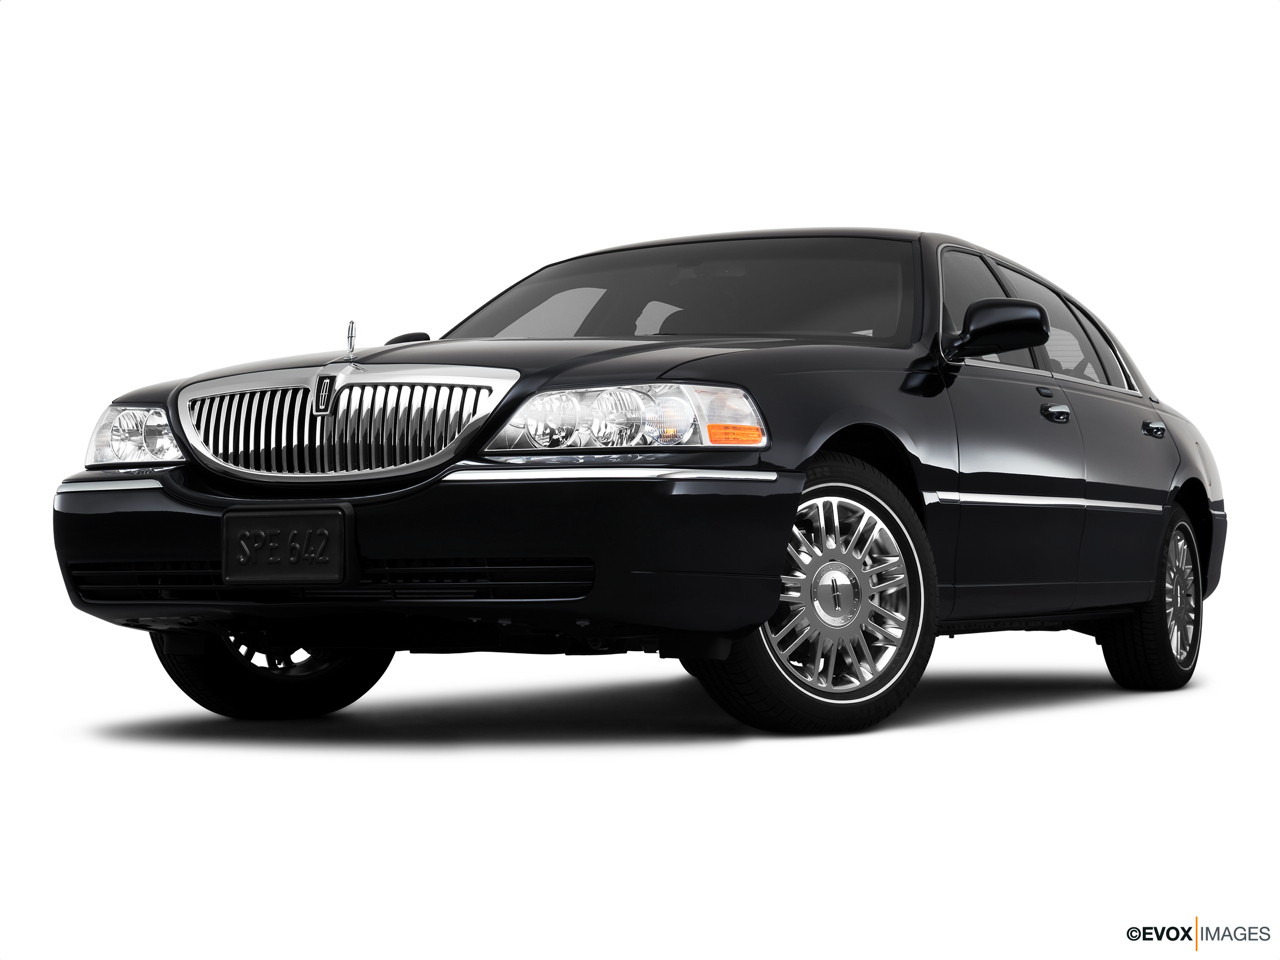 2010 Lincoln Town Car Signature L Front angle view, low wide perspective.